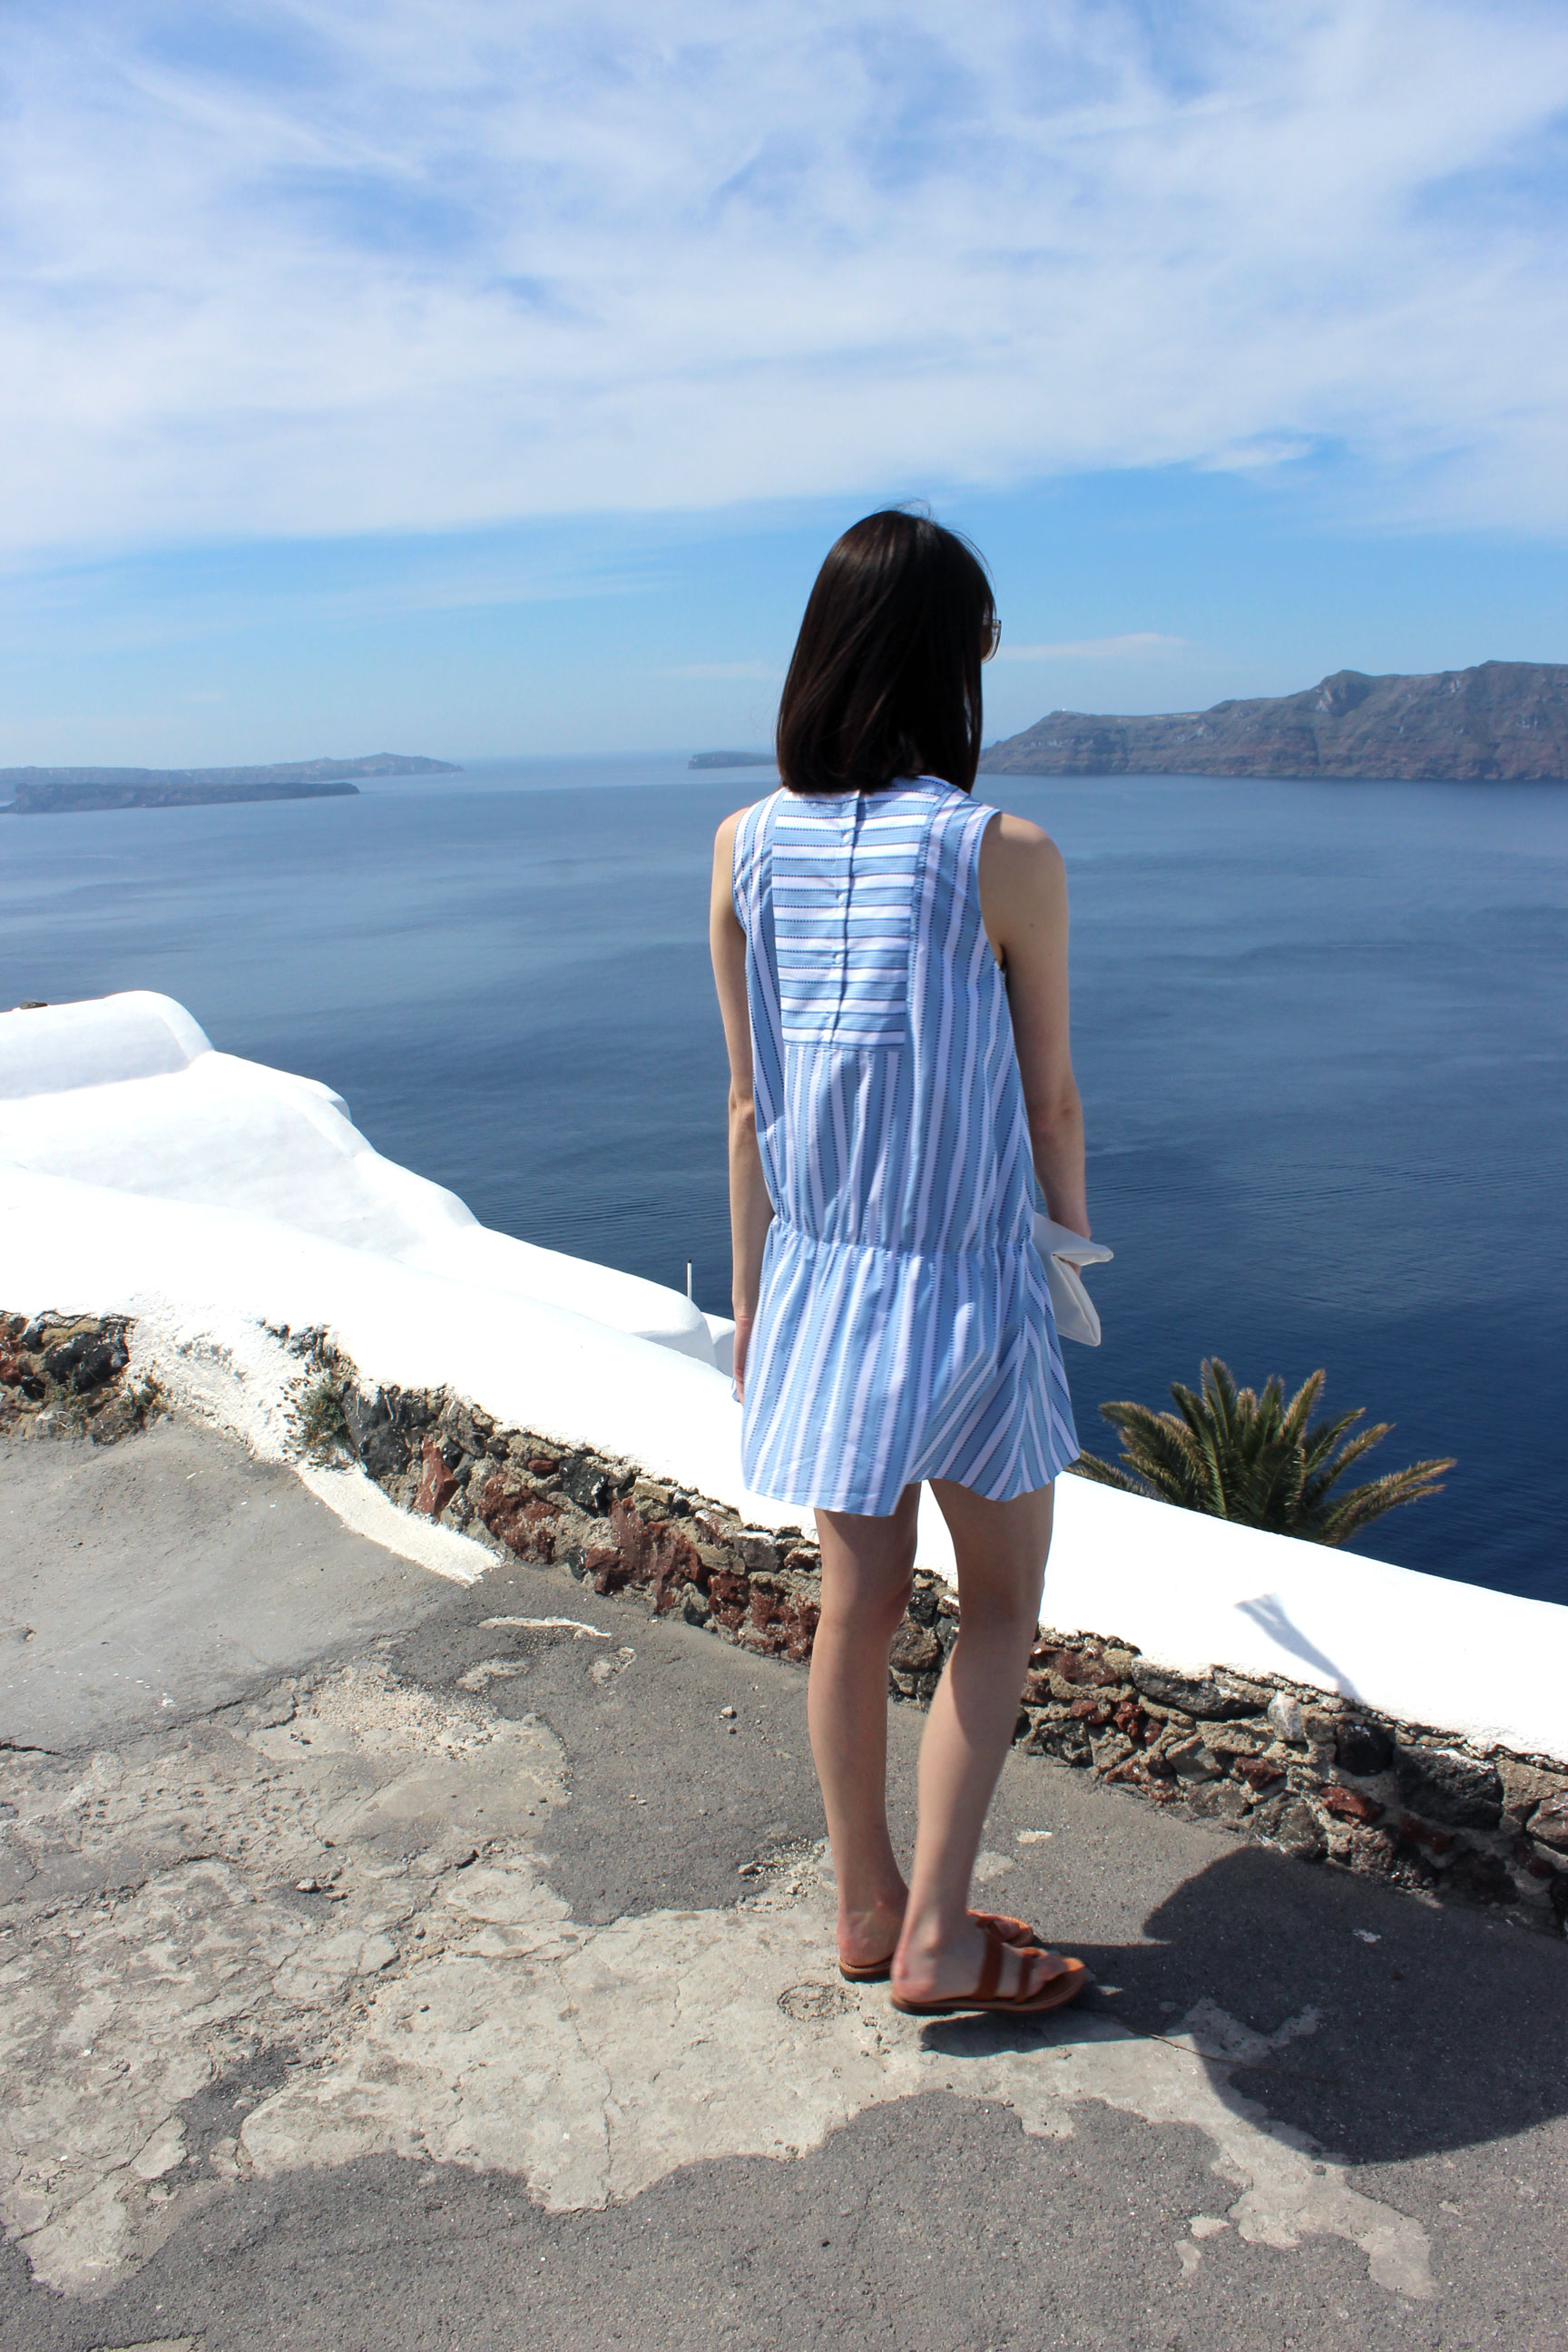 Admiring the endless blue skies and waters on the island of Santorini, Greece.